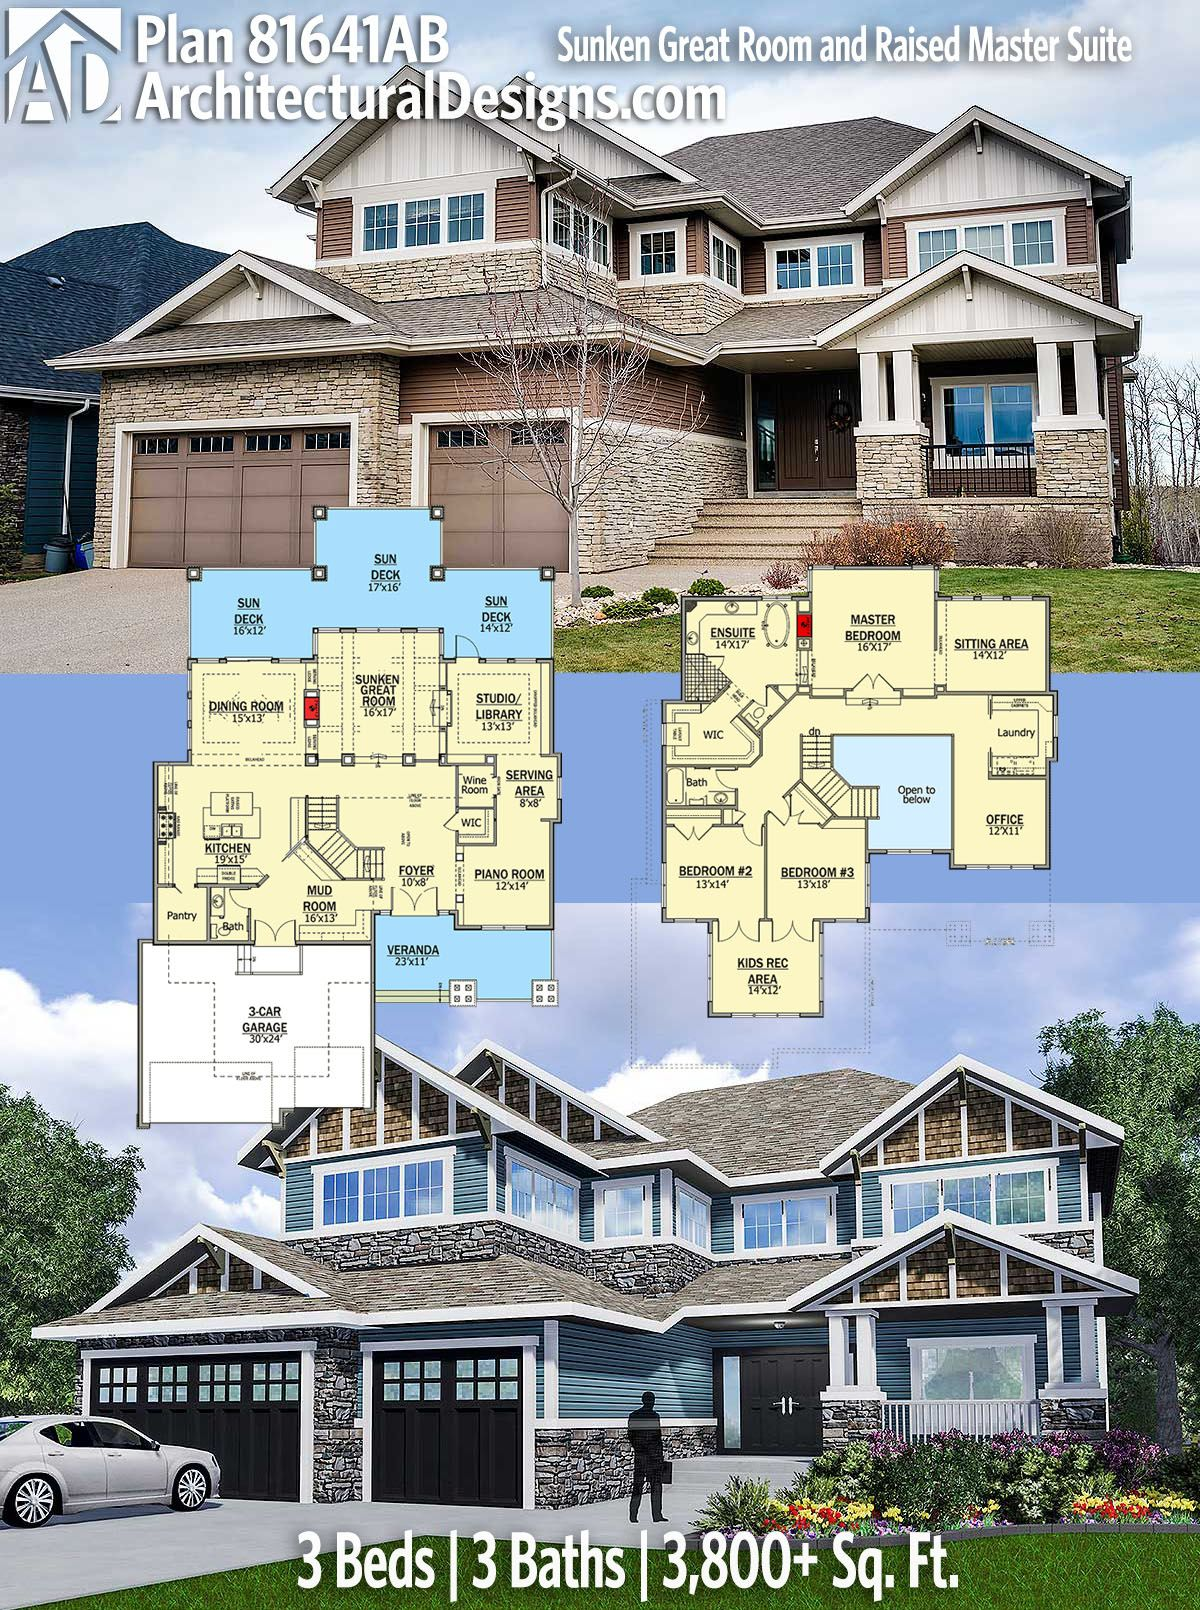 Cool Sunken Living Room Ideas For Your Dreamed House: Plan 81641AB: Sunken Great Room And Raised Master Suite In 2020